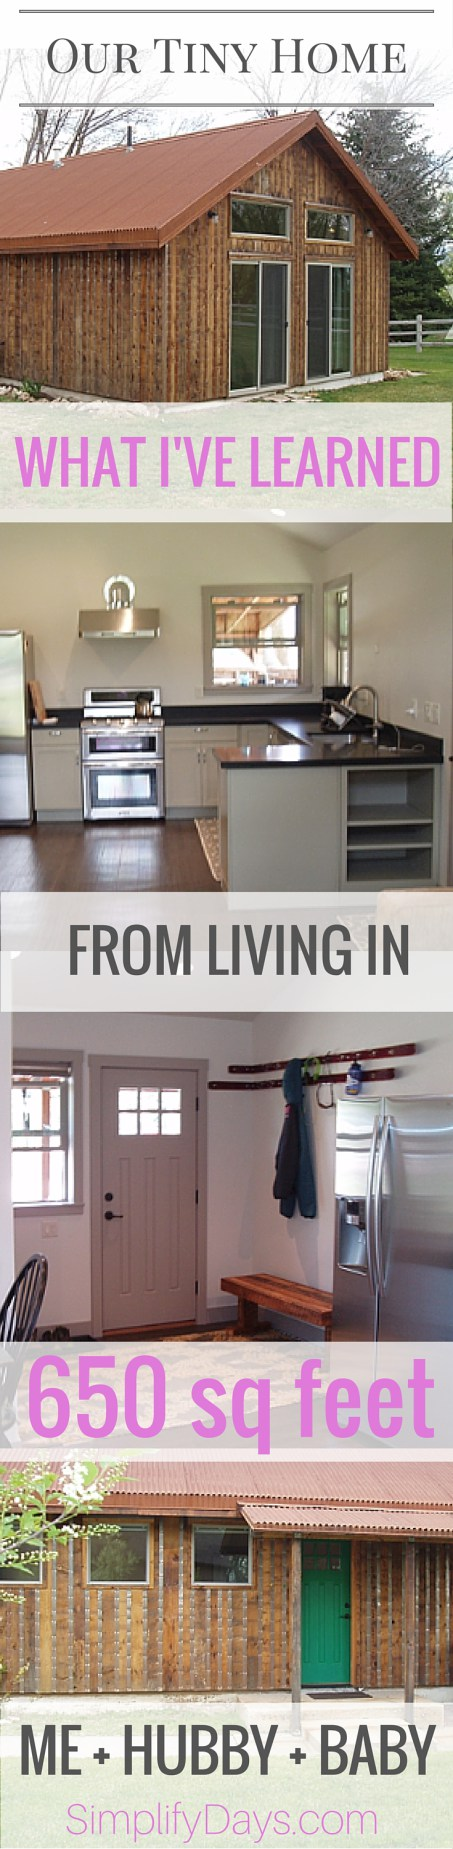 What I\'ve Learned from Living in 650 Square Feet with my Family of 3 ...